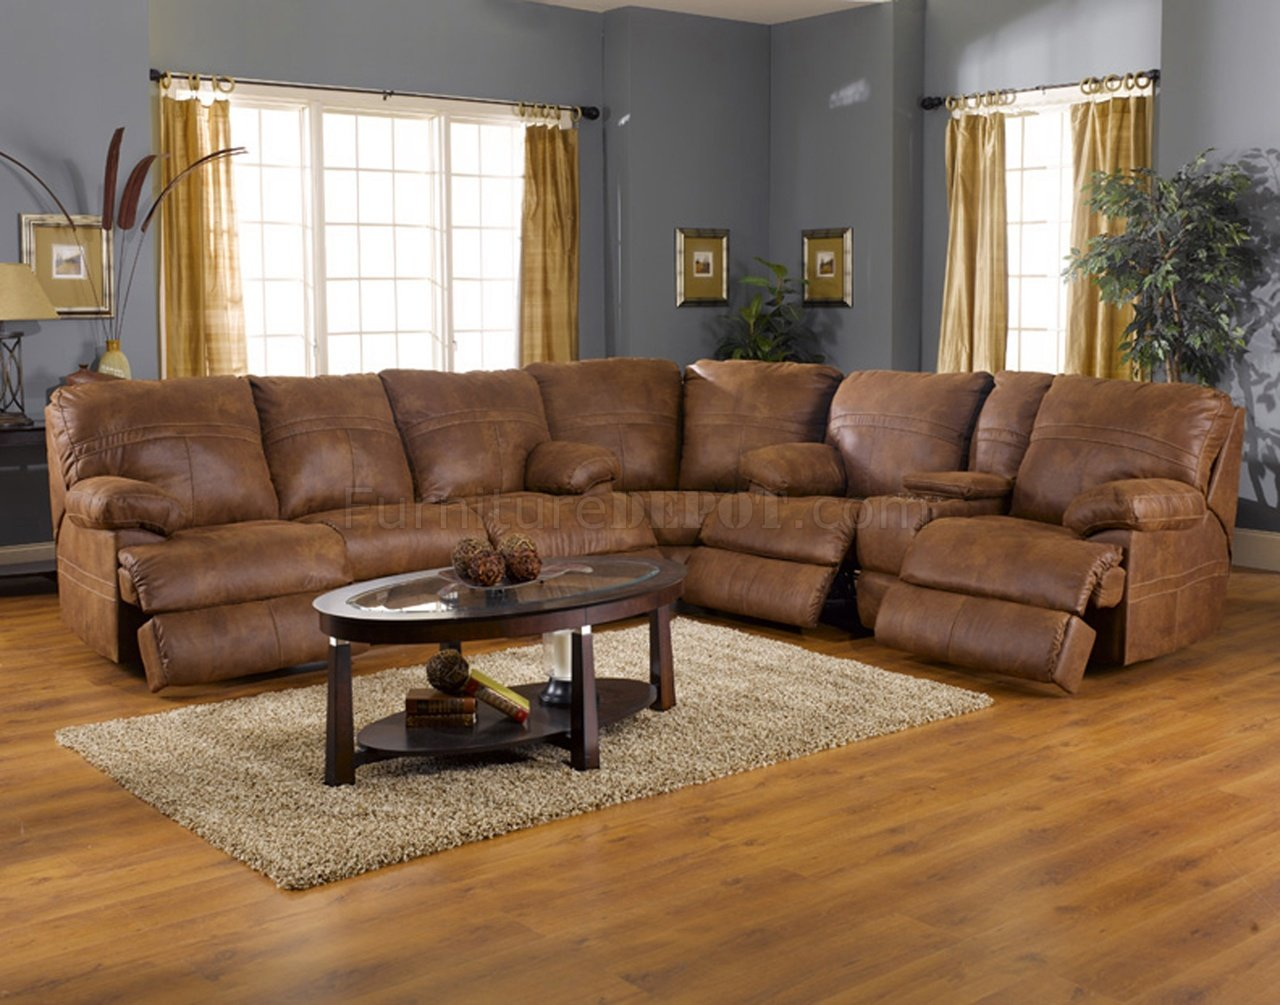 Rich Tanner Faux Leather Fabric Ranger Modern Sectional Sofa